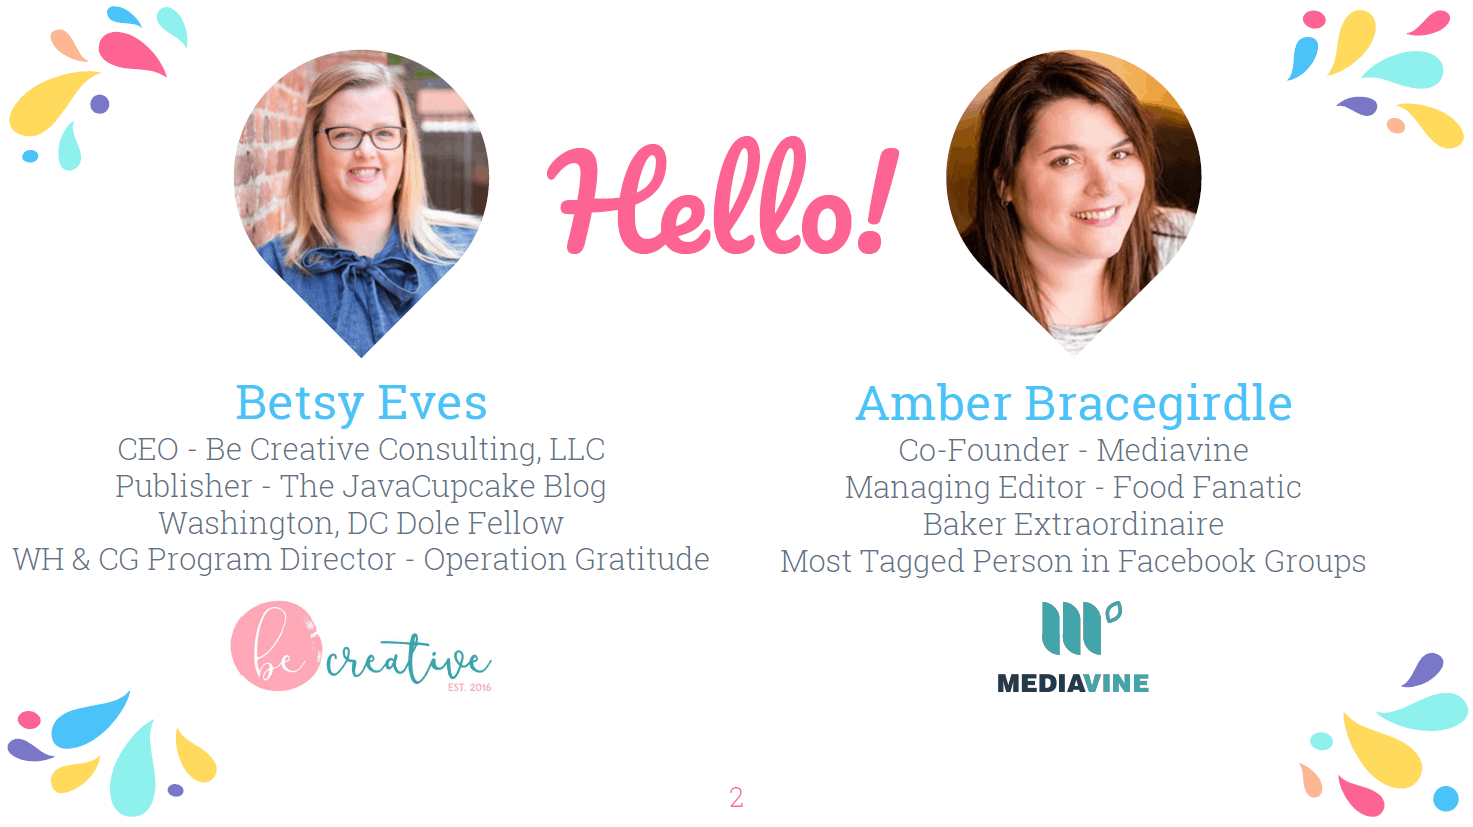 A graphic introducing Betsy Eves, of Be Creative Consulting, LLC, and Amber Bracegirdle, Mediavine.